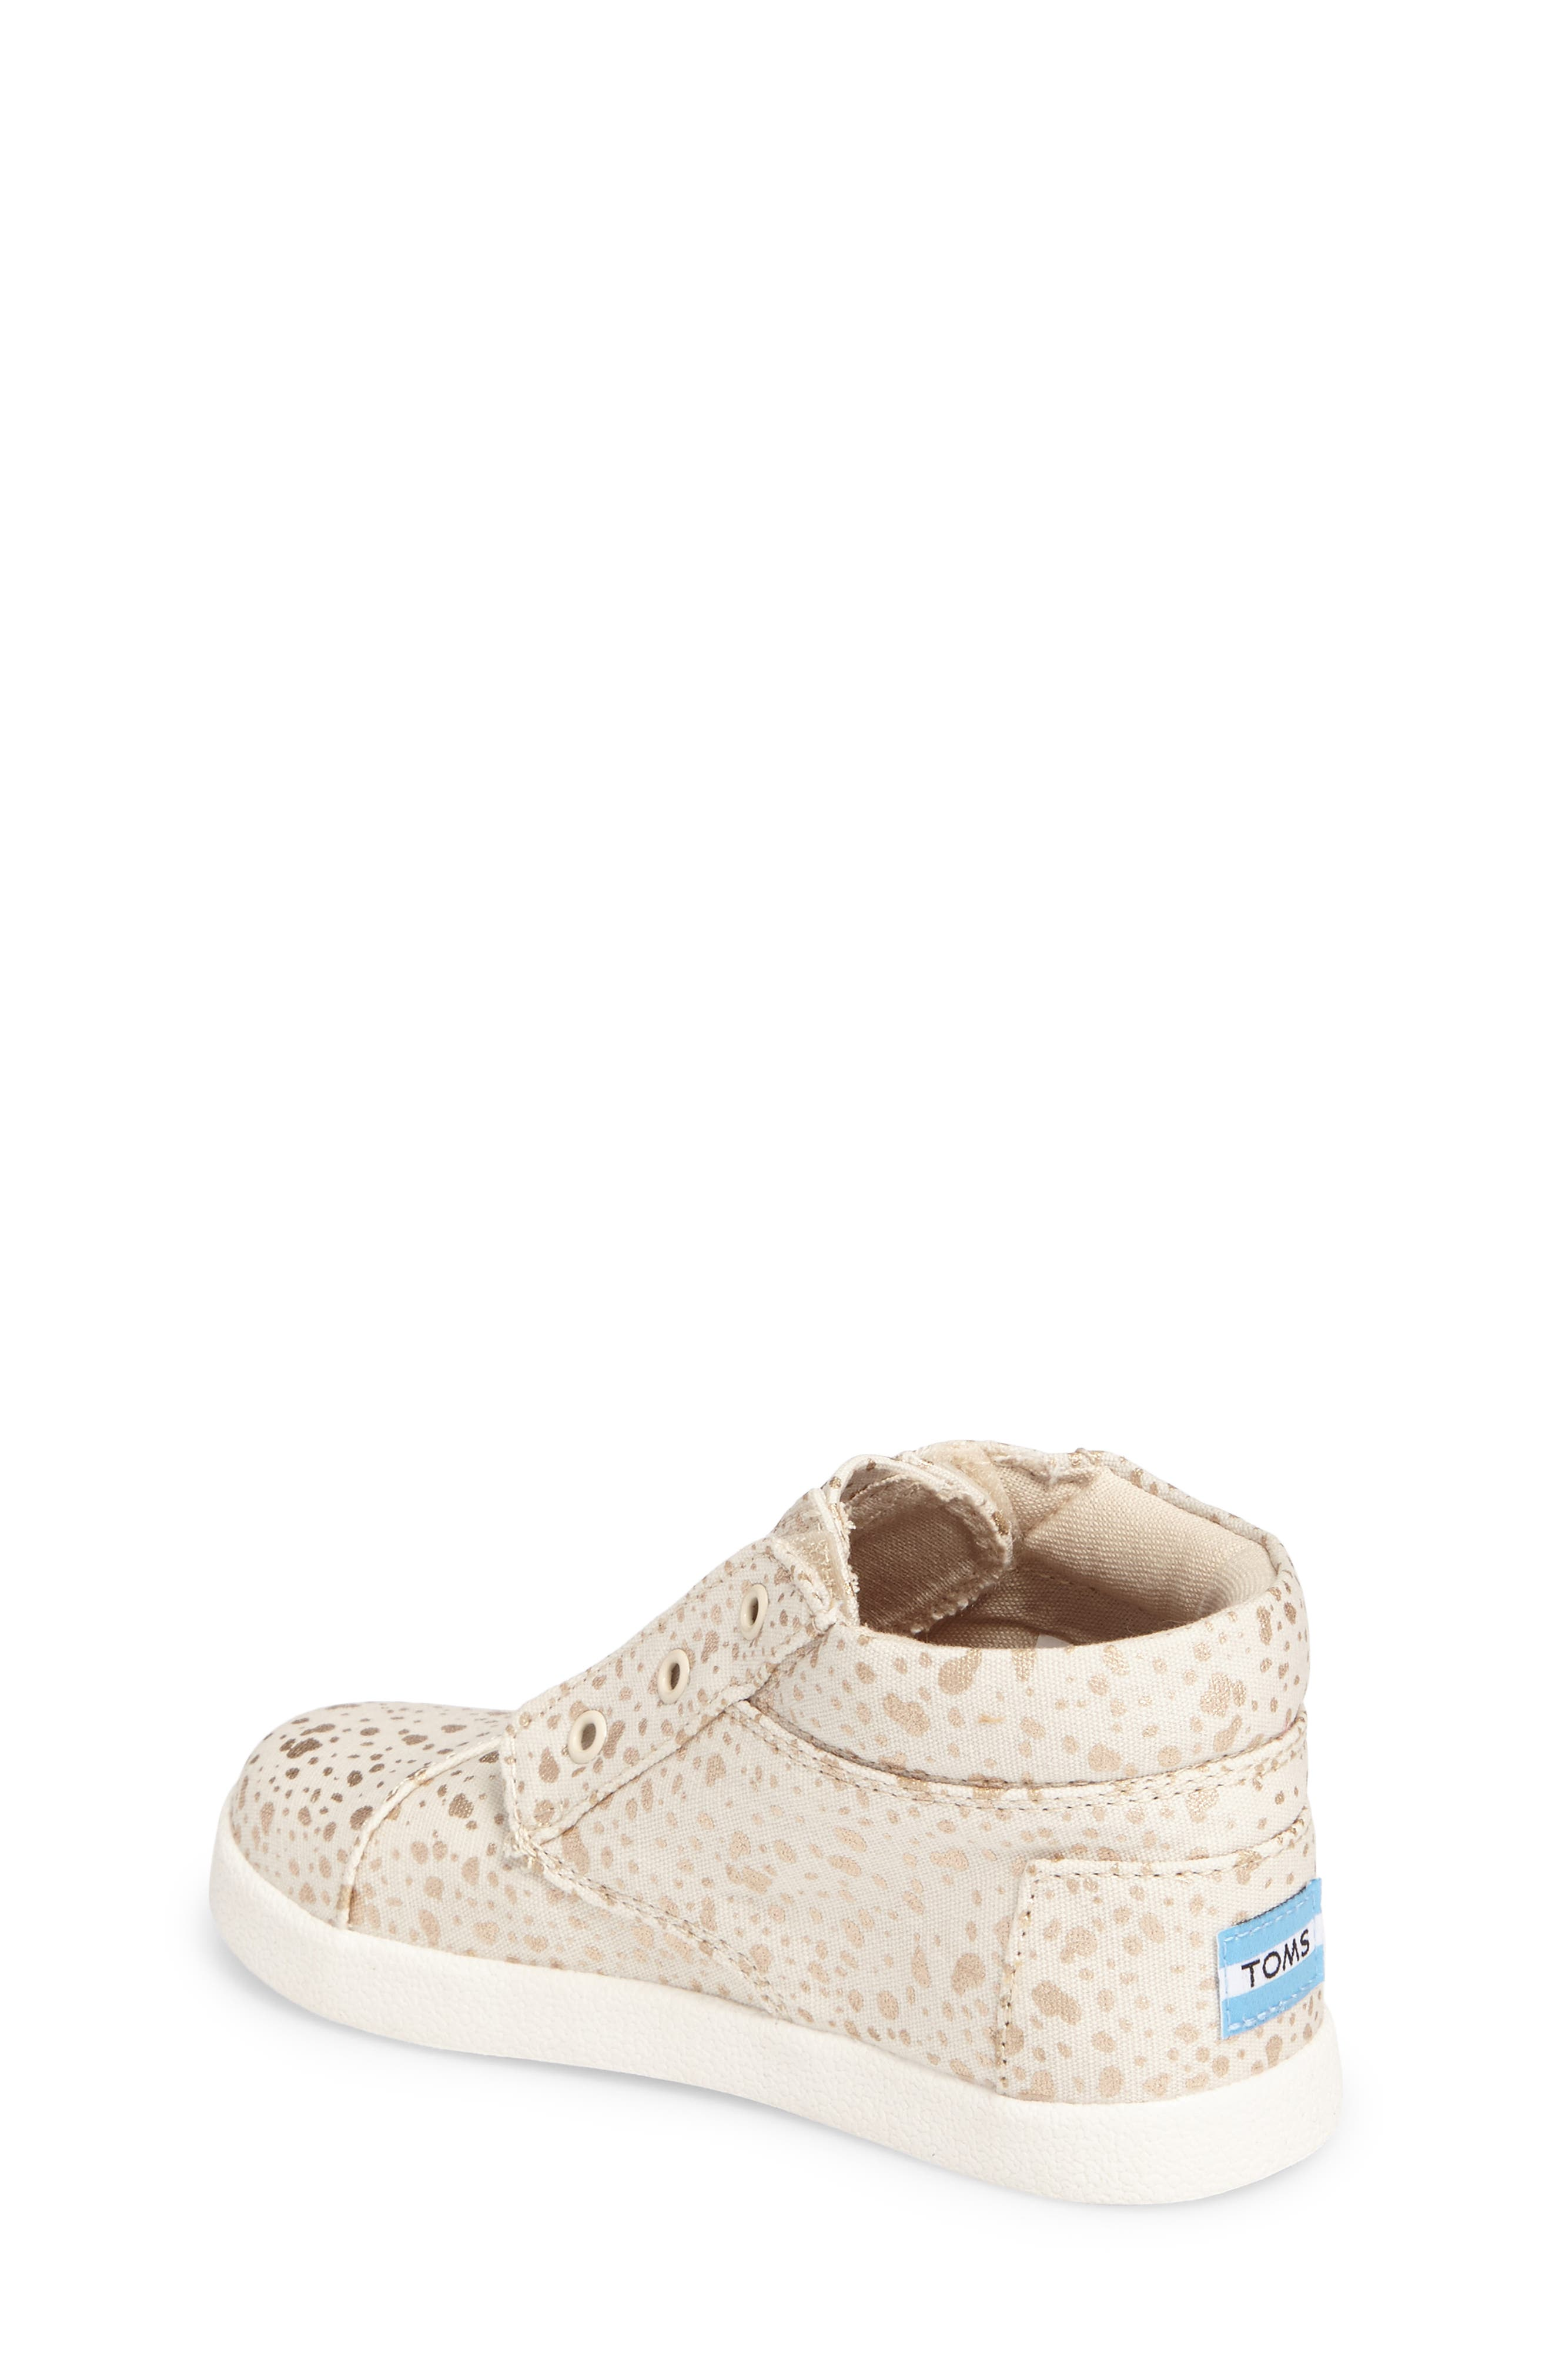 Paseo High Top Sneaker,                             Alternate thumbnail 2, color,                             GOLD FOIL SNOW SPOTS